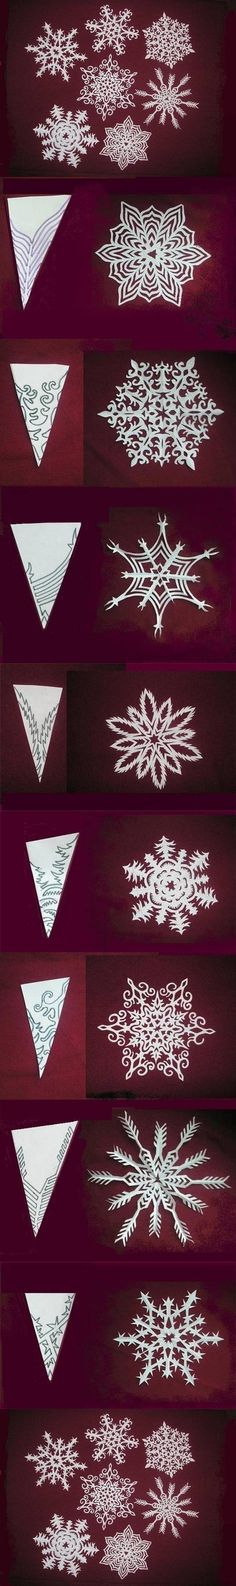 DIY Snowflakes Paper Pattern Tutorial #DIY #craft #crafts #paper #snowflake #Christmas #decor #decorate #decoration #winter #snow